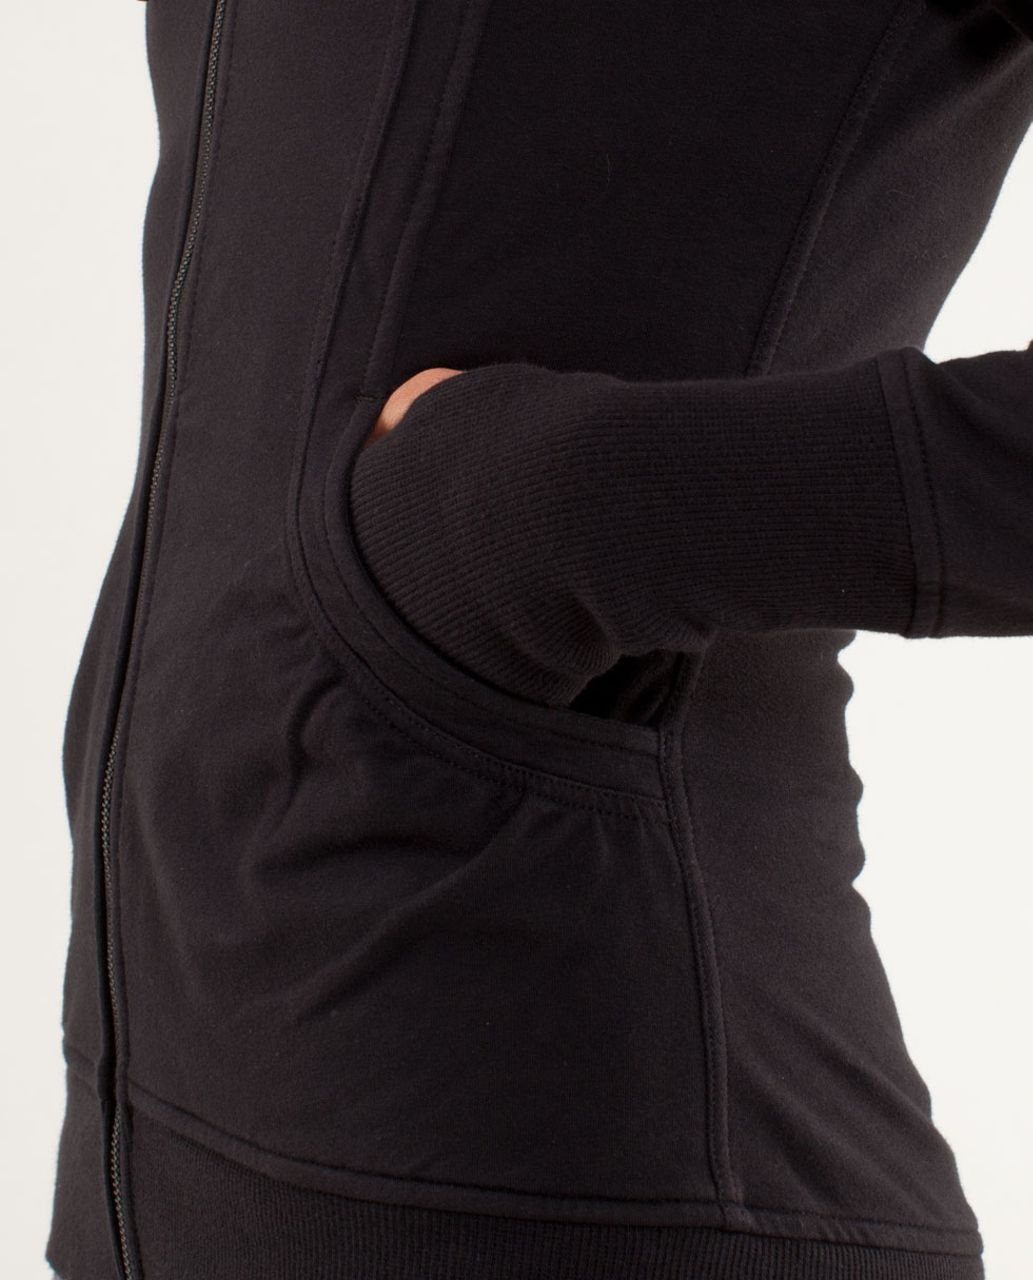 Lululemon Back To Class Jacket - Black - lulu fanatics